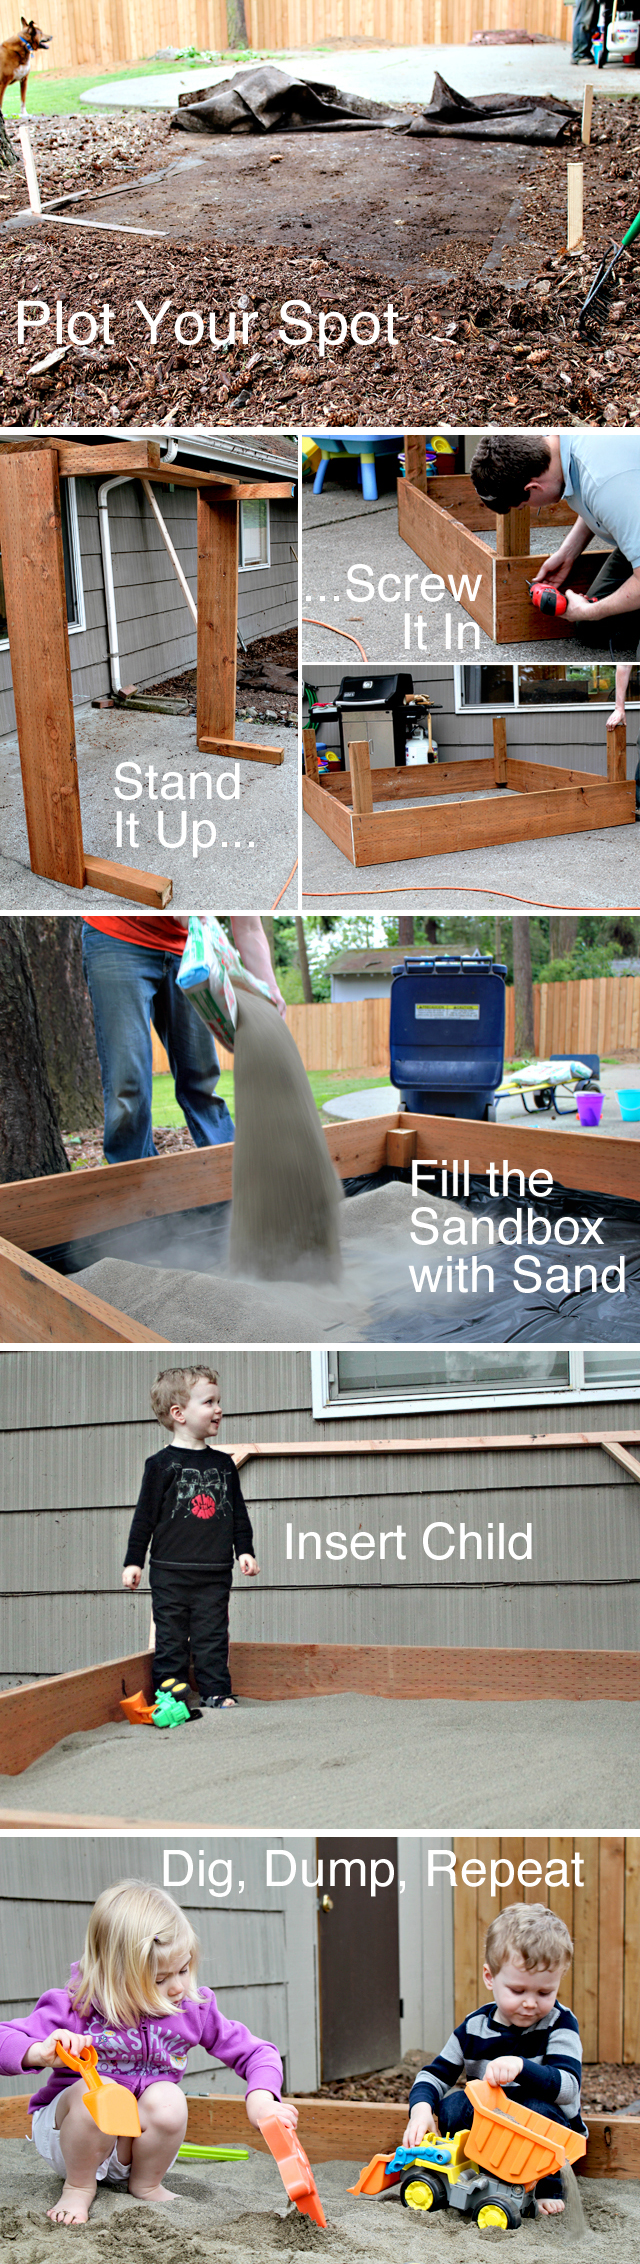 Step by step instructions on how to build a sandbox the kids will play with for hours!